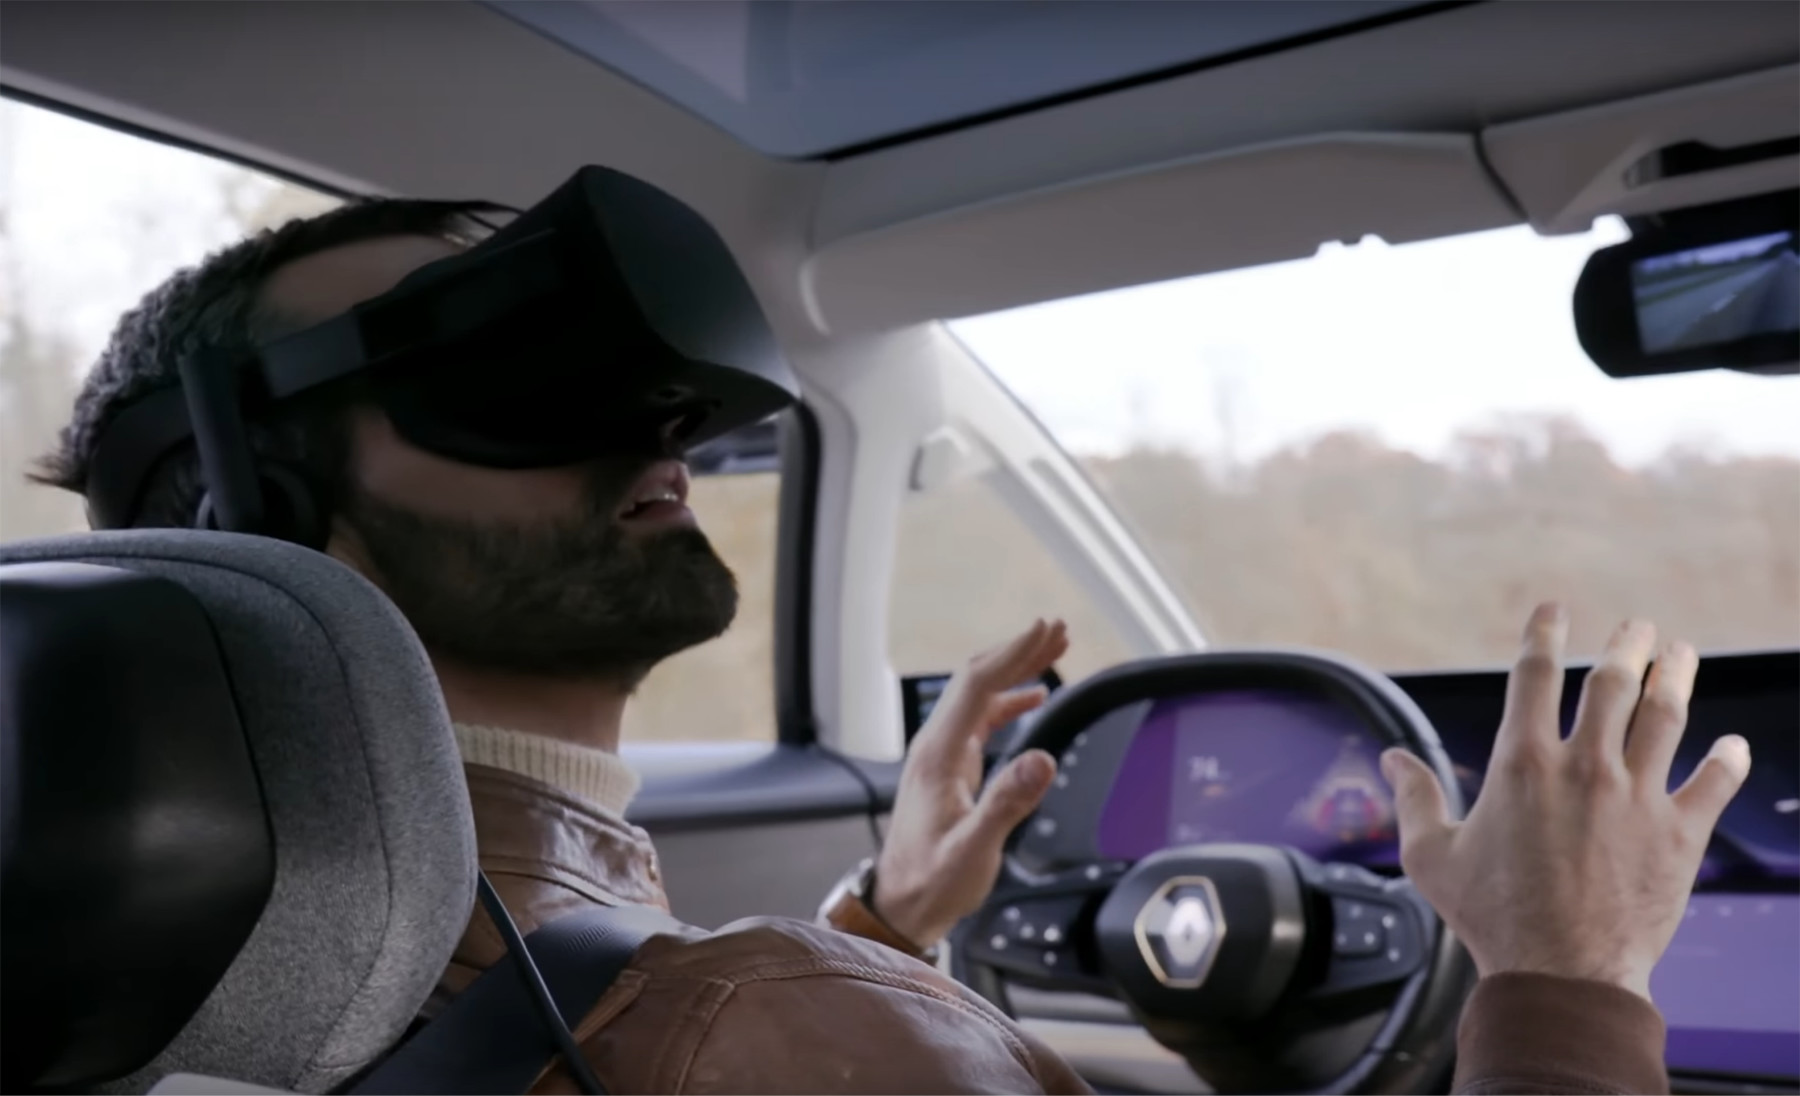 Ubisoft And Renault Partner Up To Allow Drivers To Experience Vr